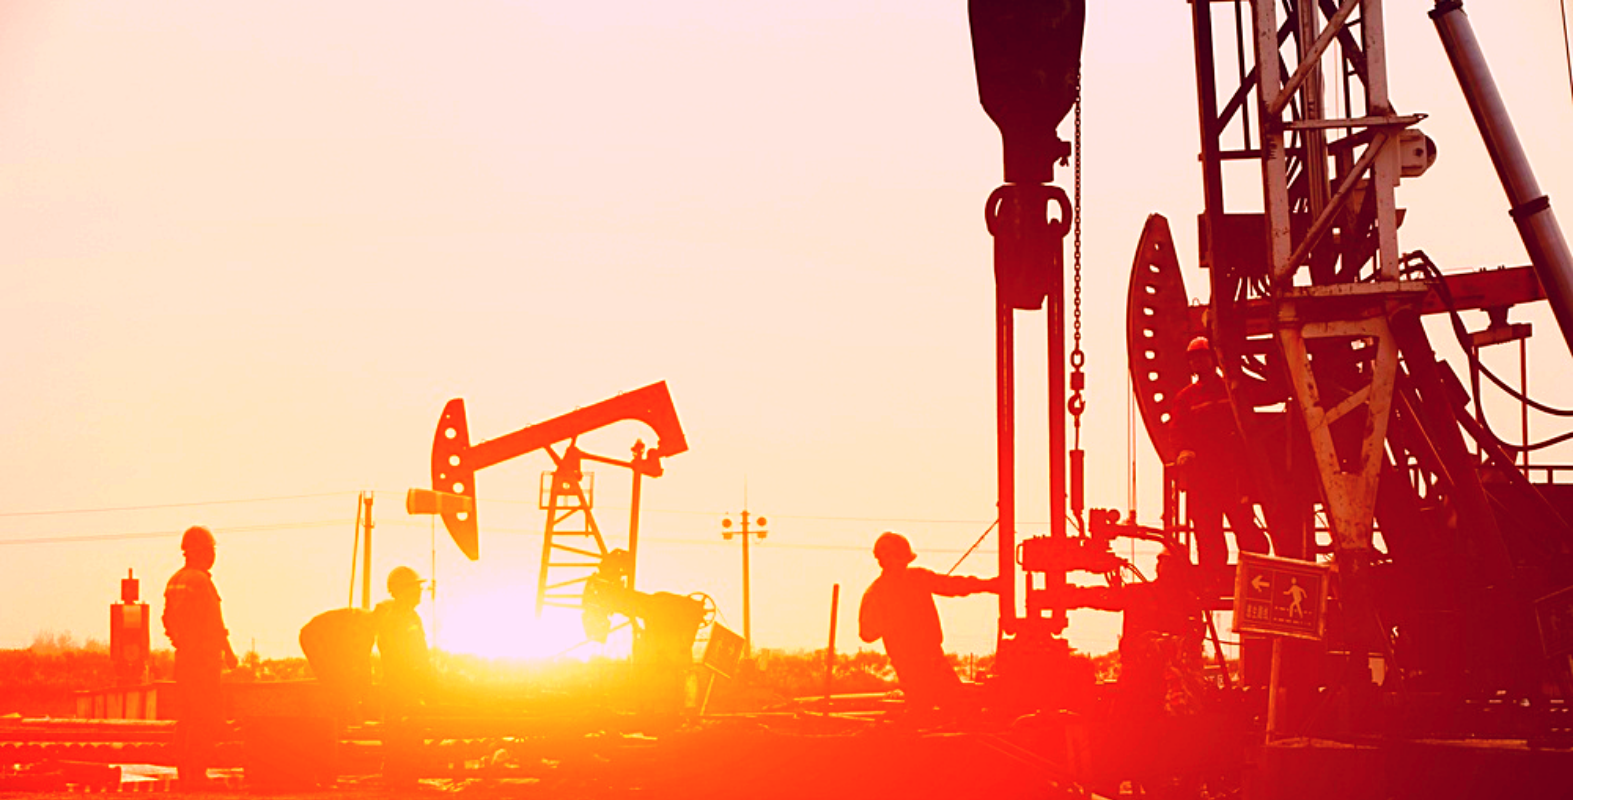 Why Ontarians should care about oil, gas and Alberta: 68,000 jobs